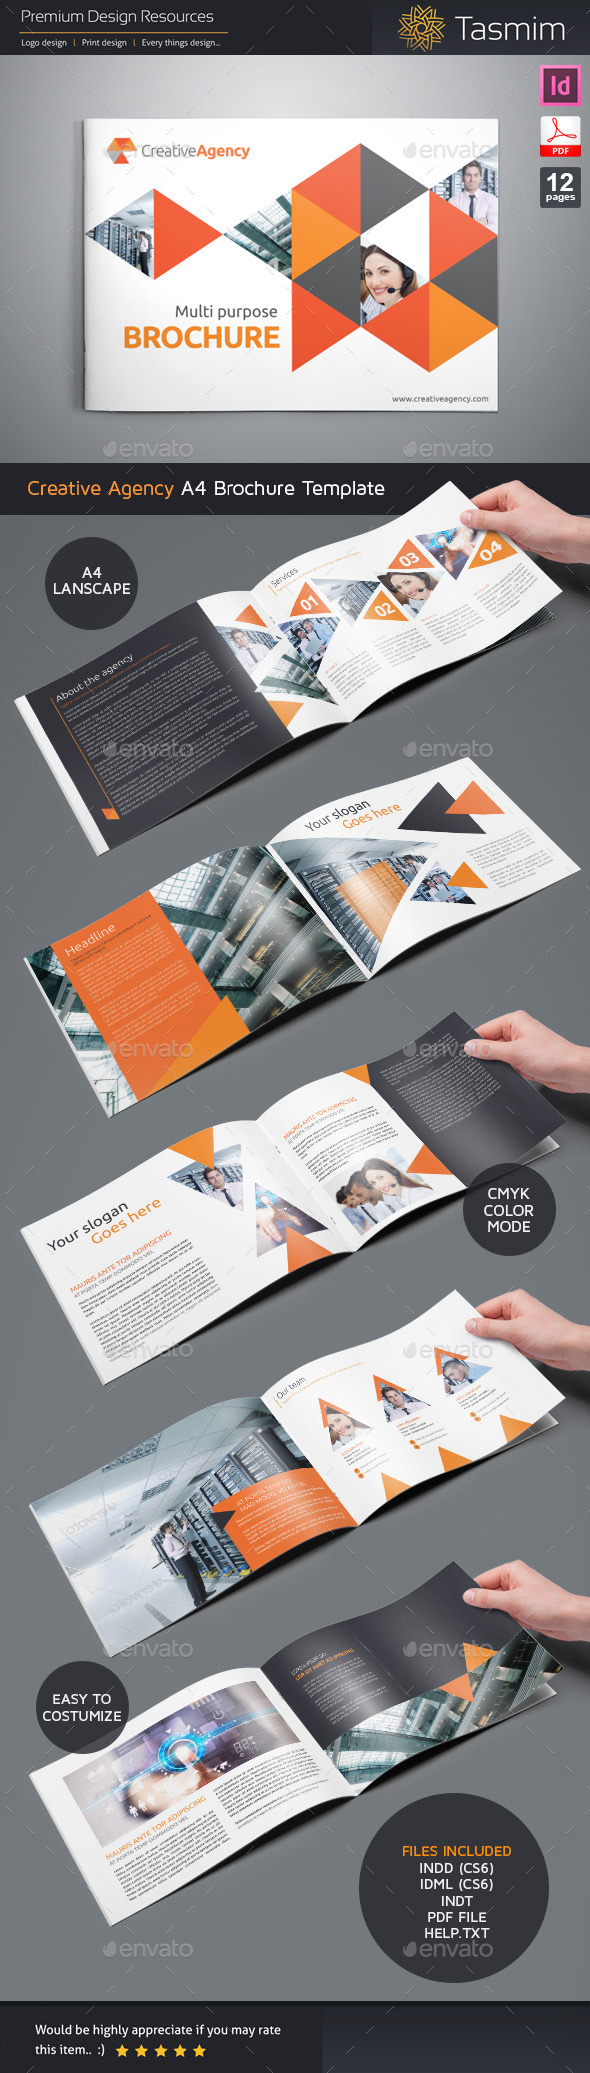 GraphicRiver Creative Agency 2015 Brochure Template 10930660